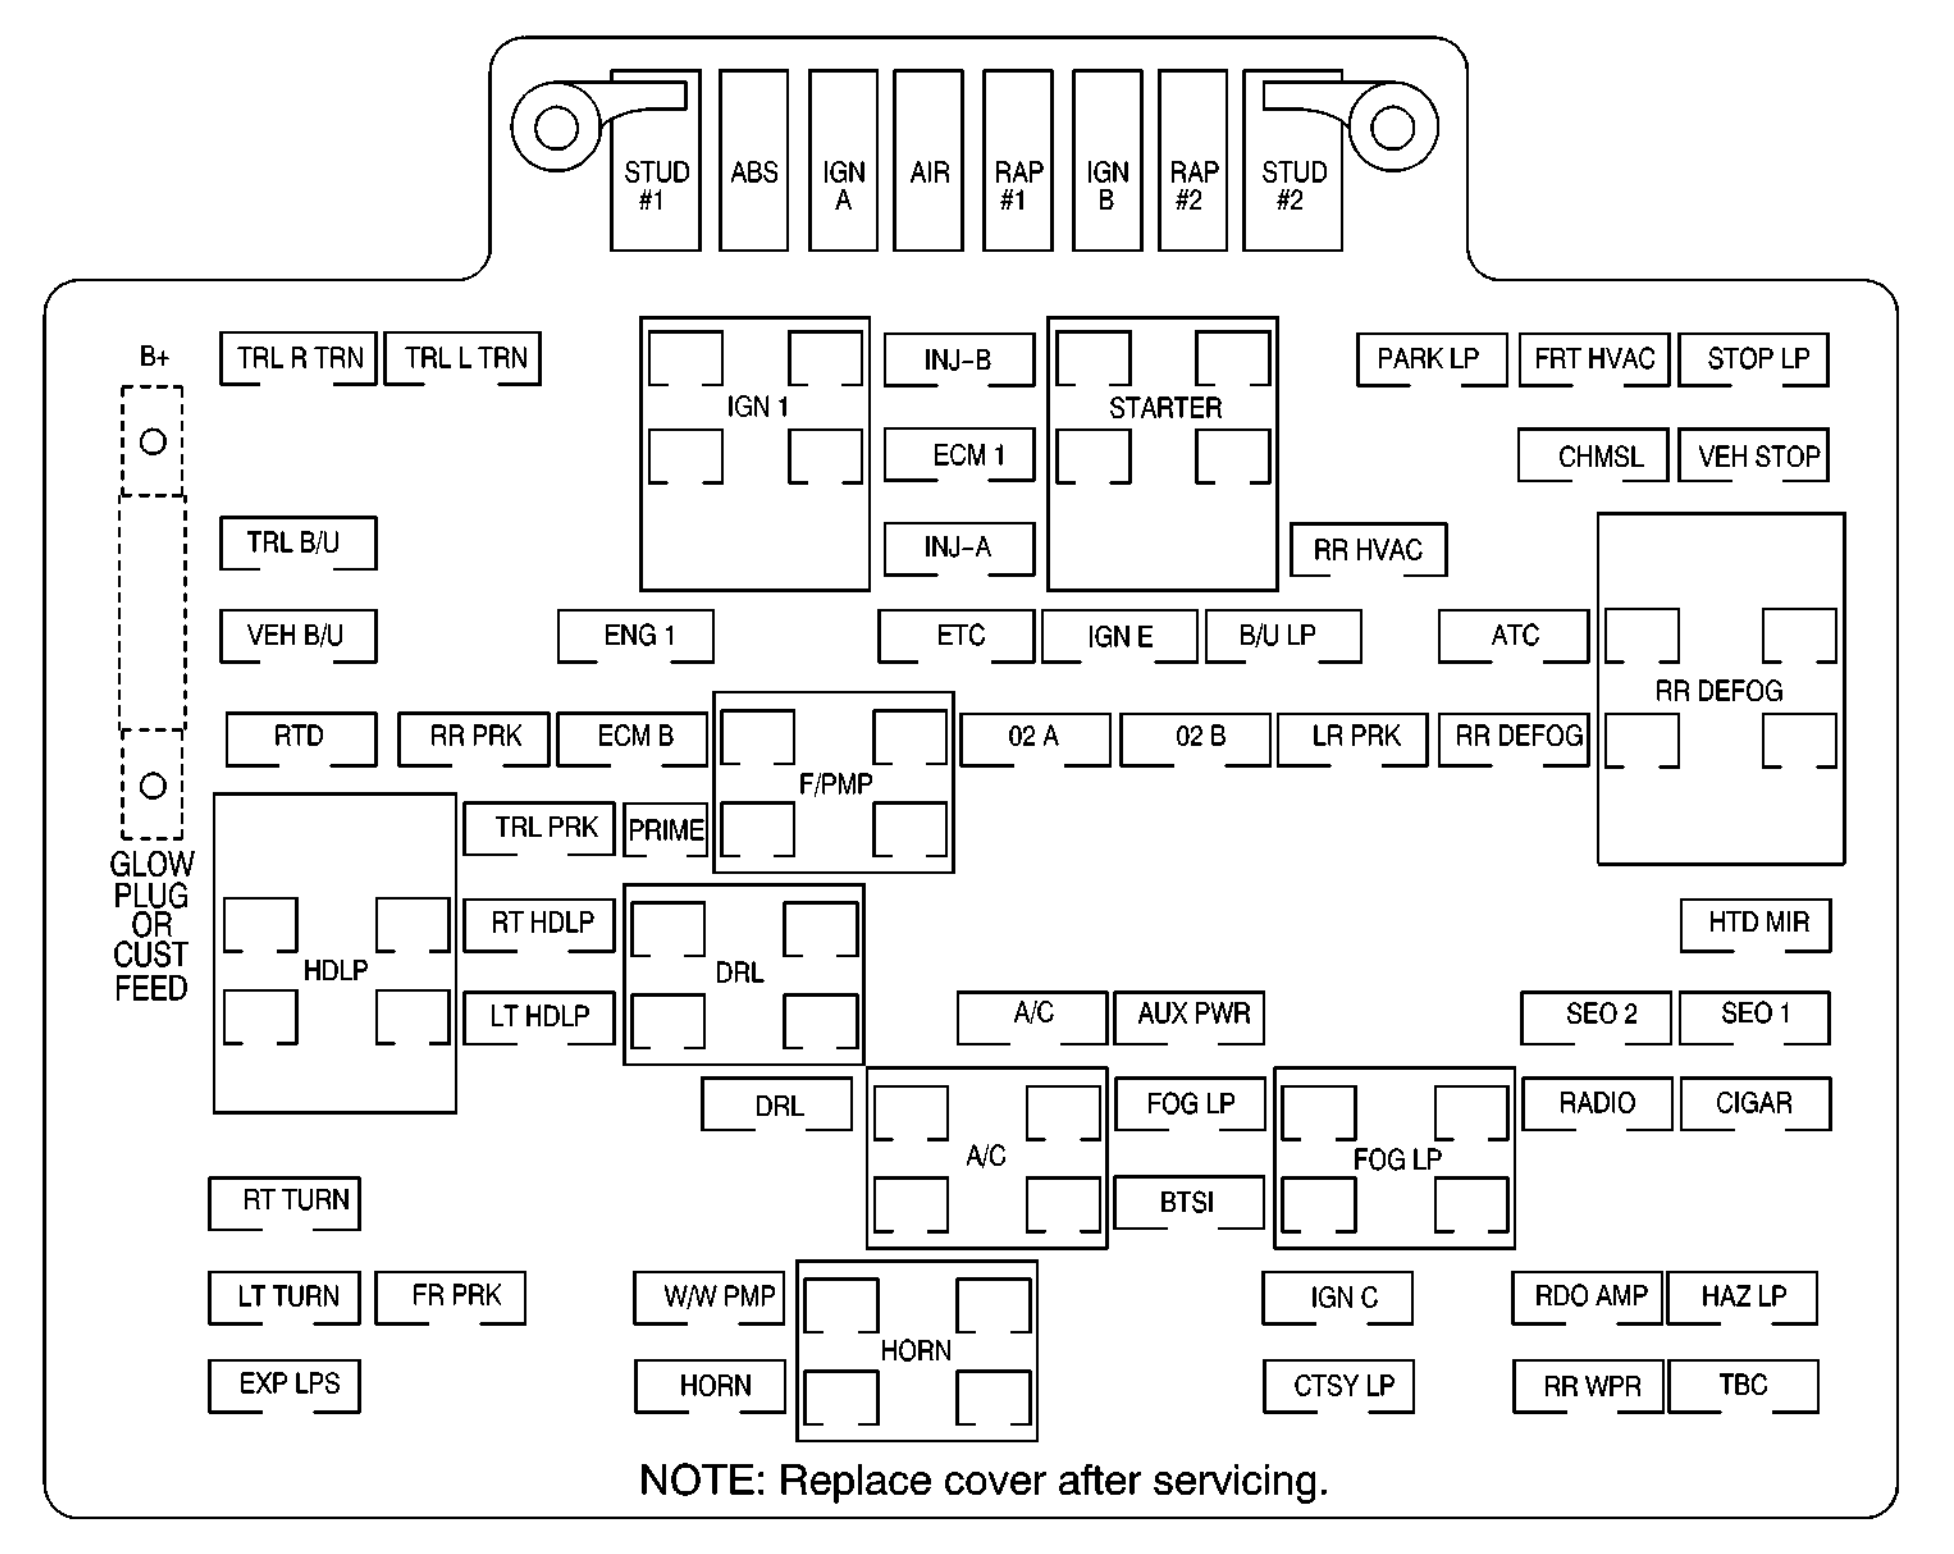 1995 Chevy Suburban Fuse Box Diagram Free Wiring For You 93 C1500 2001 Tahoe Panel Best Site Harness 1500